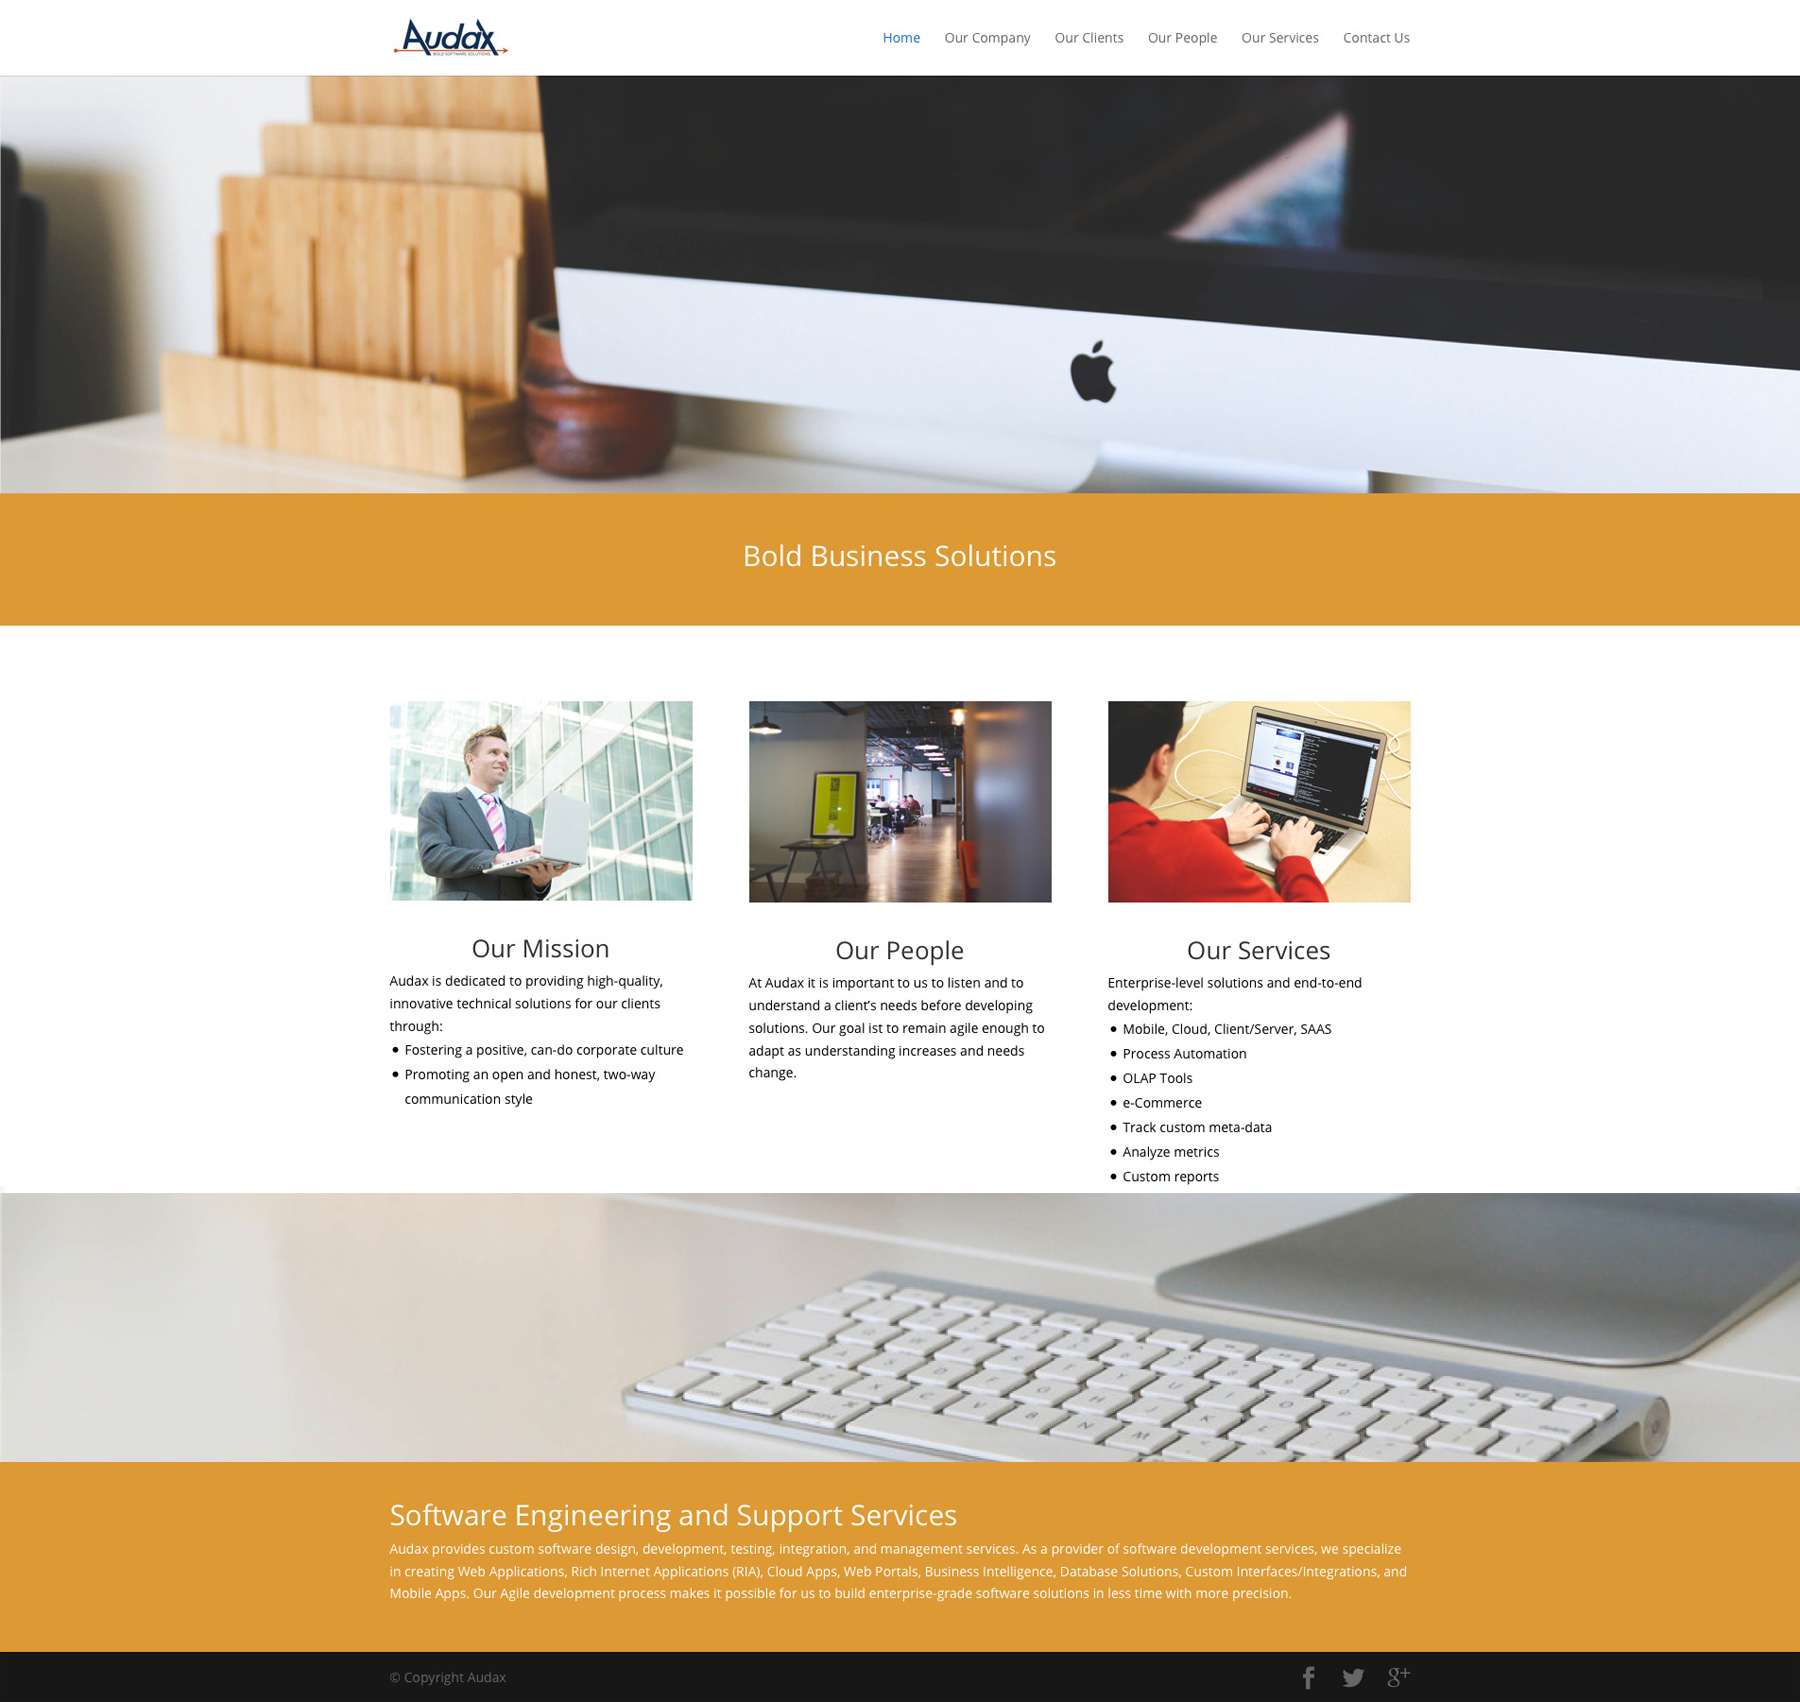 Audax website design